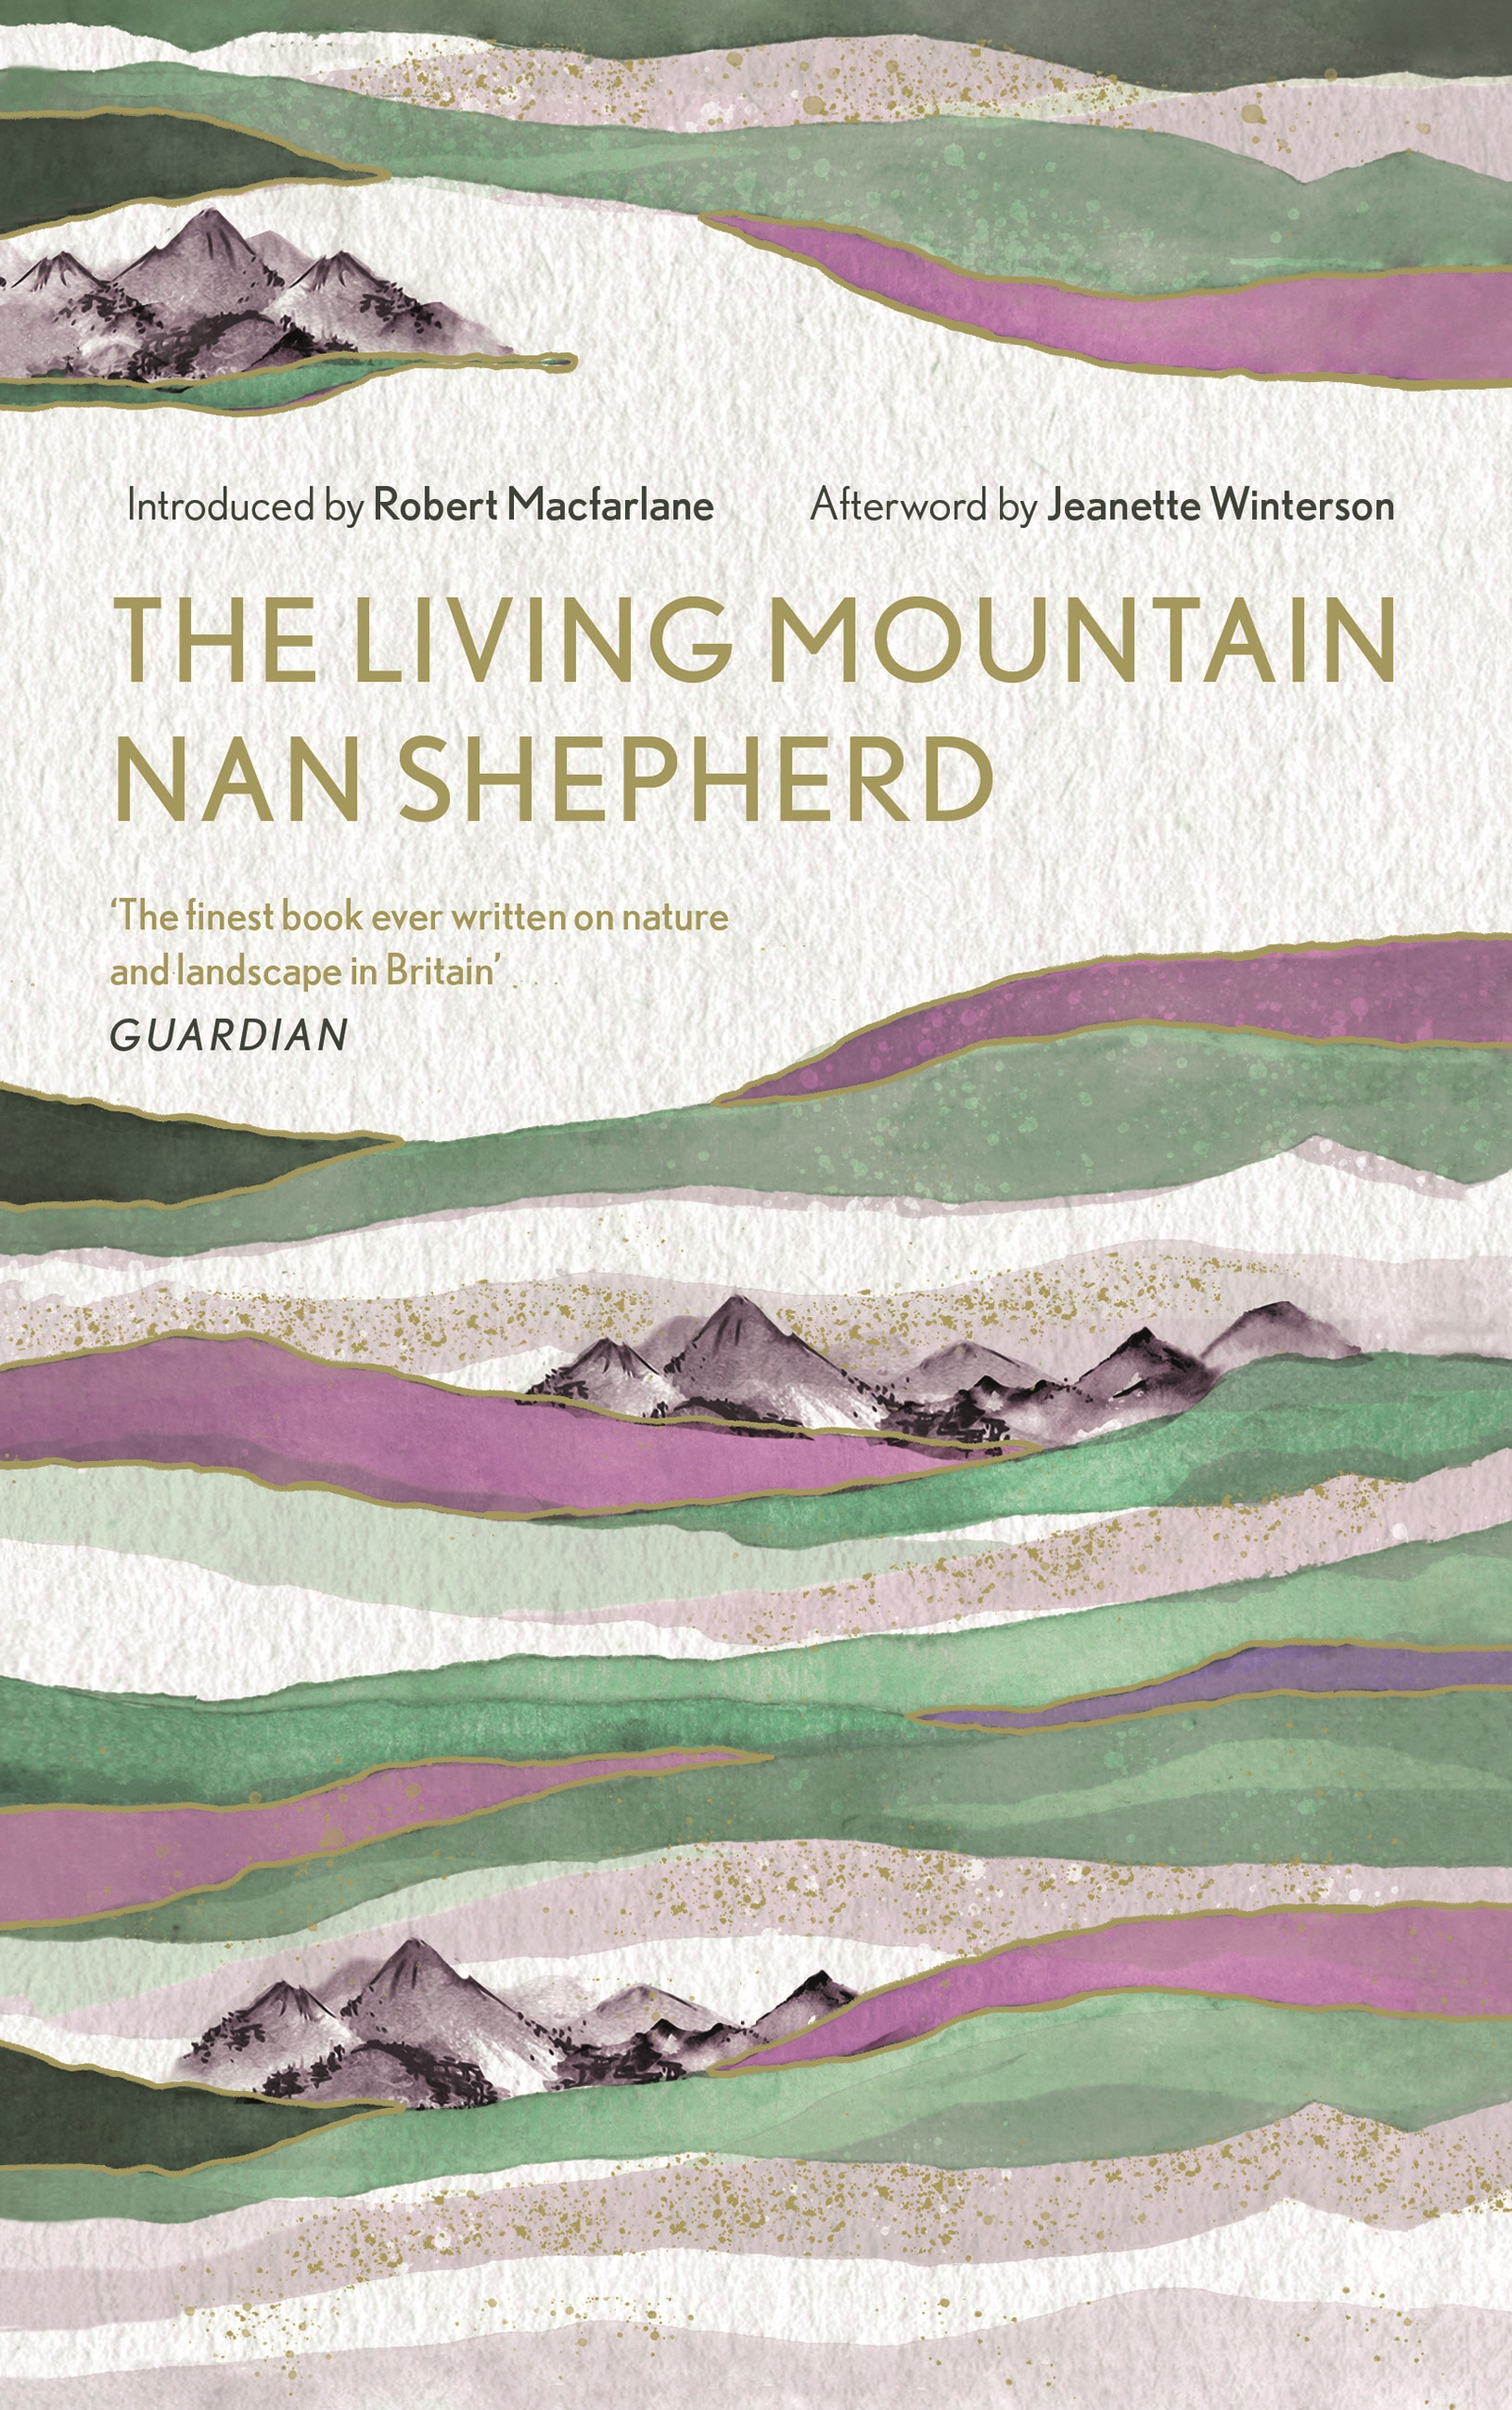 Featured Book - The Living Mountain by Nan Shepherd, new edition with an intro by Robert Macfarlane & afterword by Jeanette Winterson (Canongate, 2019)